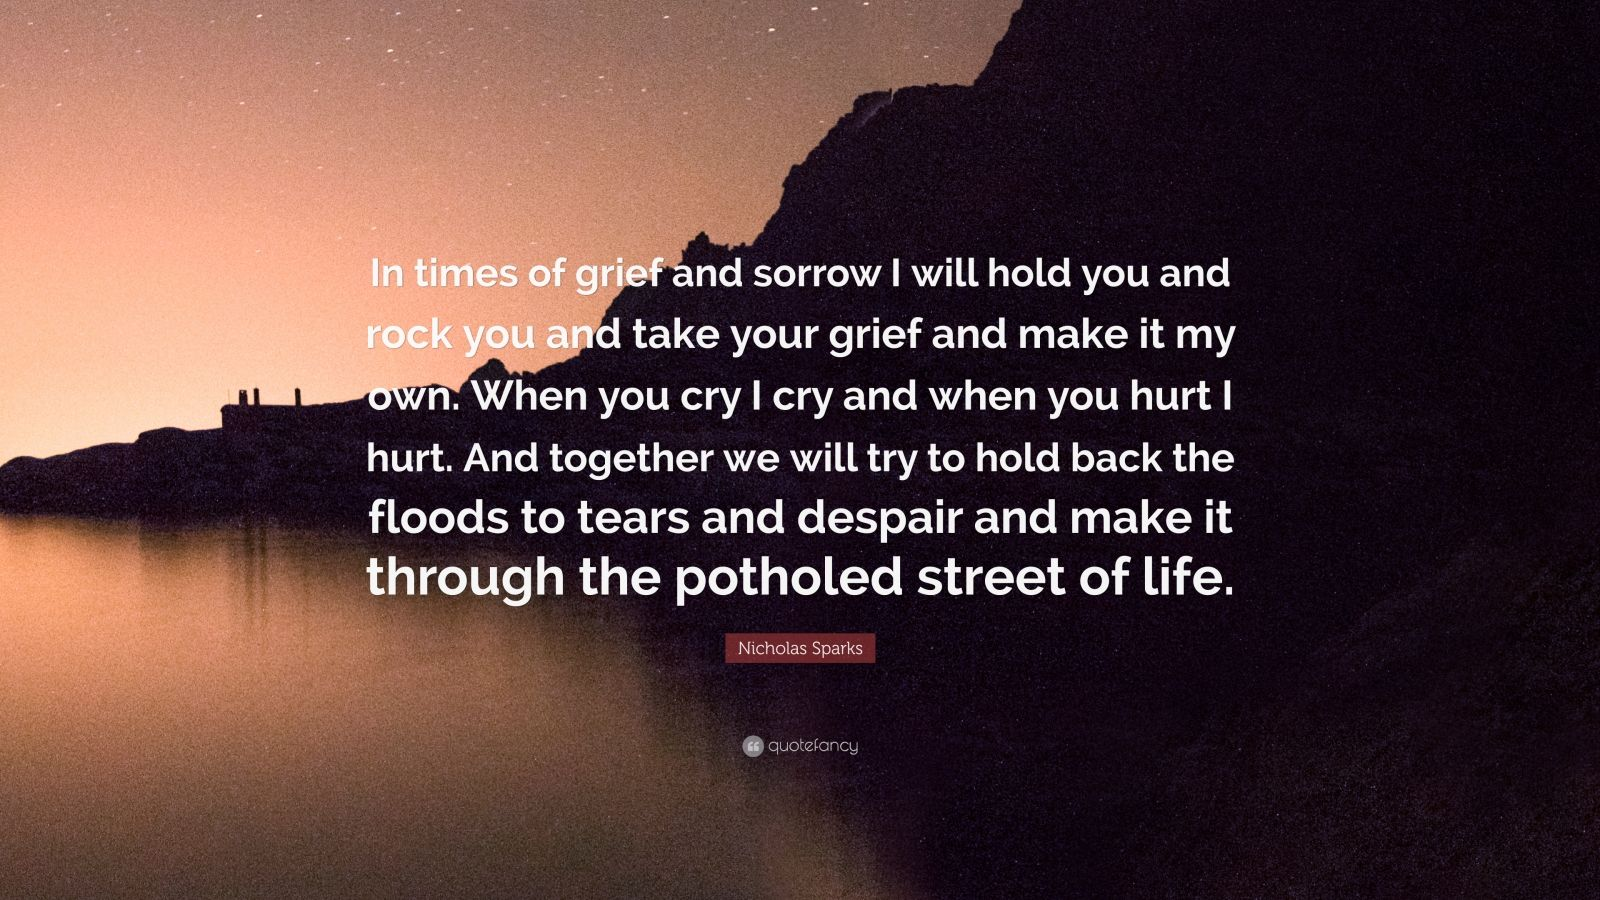 """Nicholas Sparks Quote: """"In times of grief and sorrow I will hold you and rock you and take your grief and make it my own. When you cry I cry and when you hurt I hurt. And together we will try to hold back the floods to tears and despair and make it through the potholed street of life."""""""